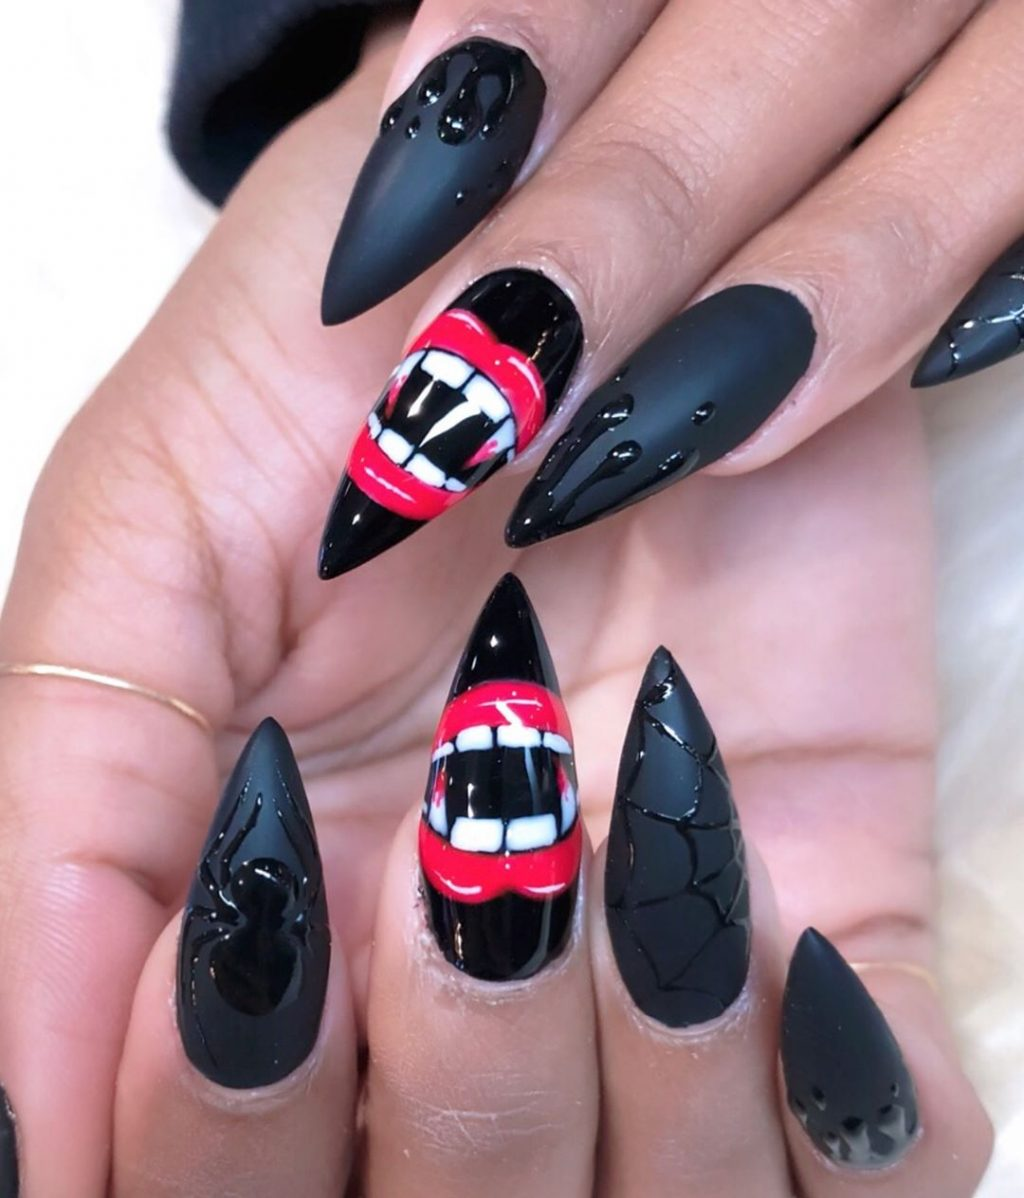 Spooky Black Spiderweb Halloween Press On Nails